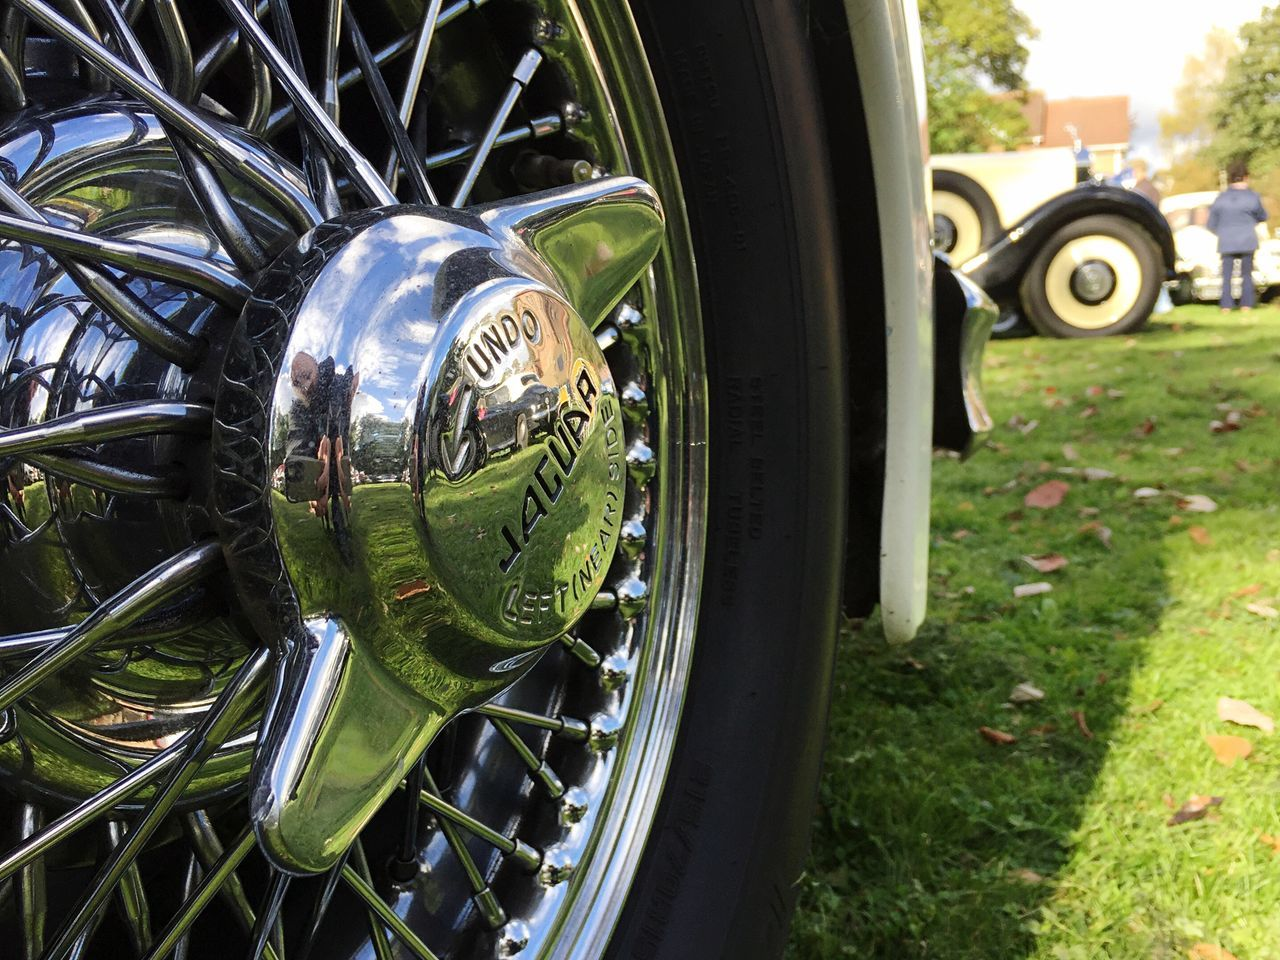 Vintage Cars. JAGUAR Spoked Wheels